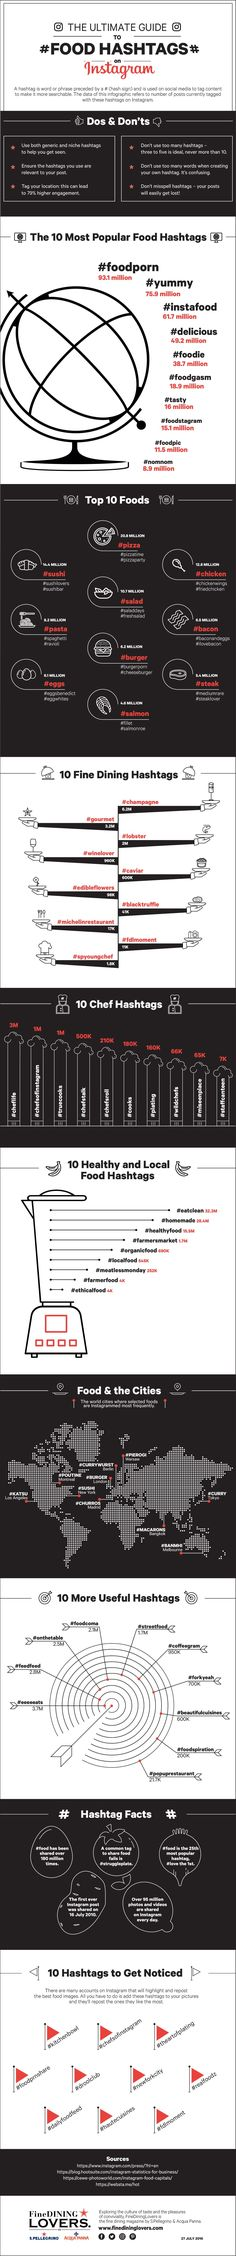 Food Hashtag Guide   Infographic by FineDiningLovers.com Mais